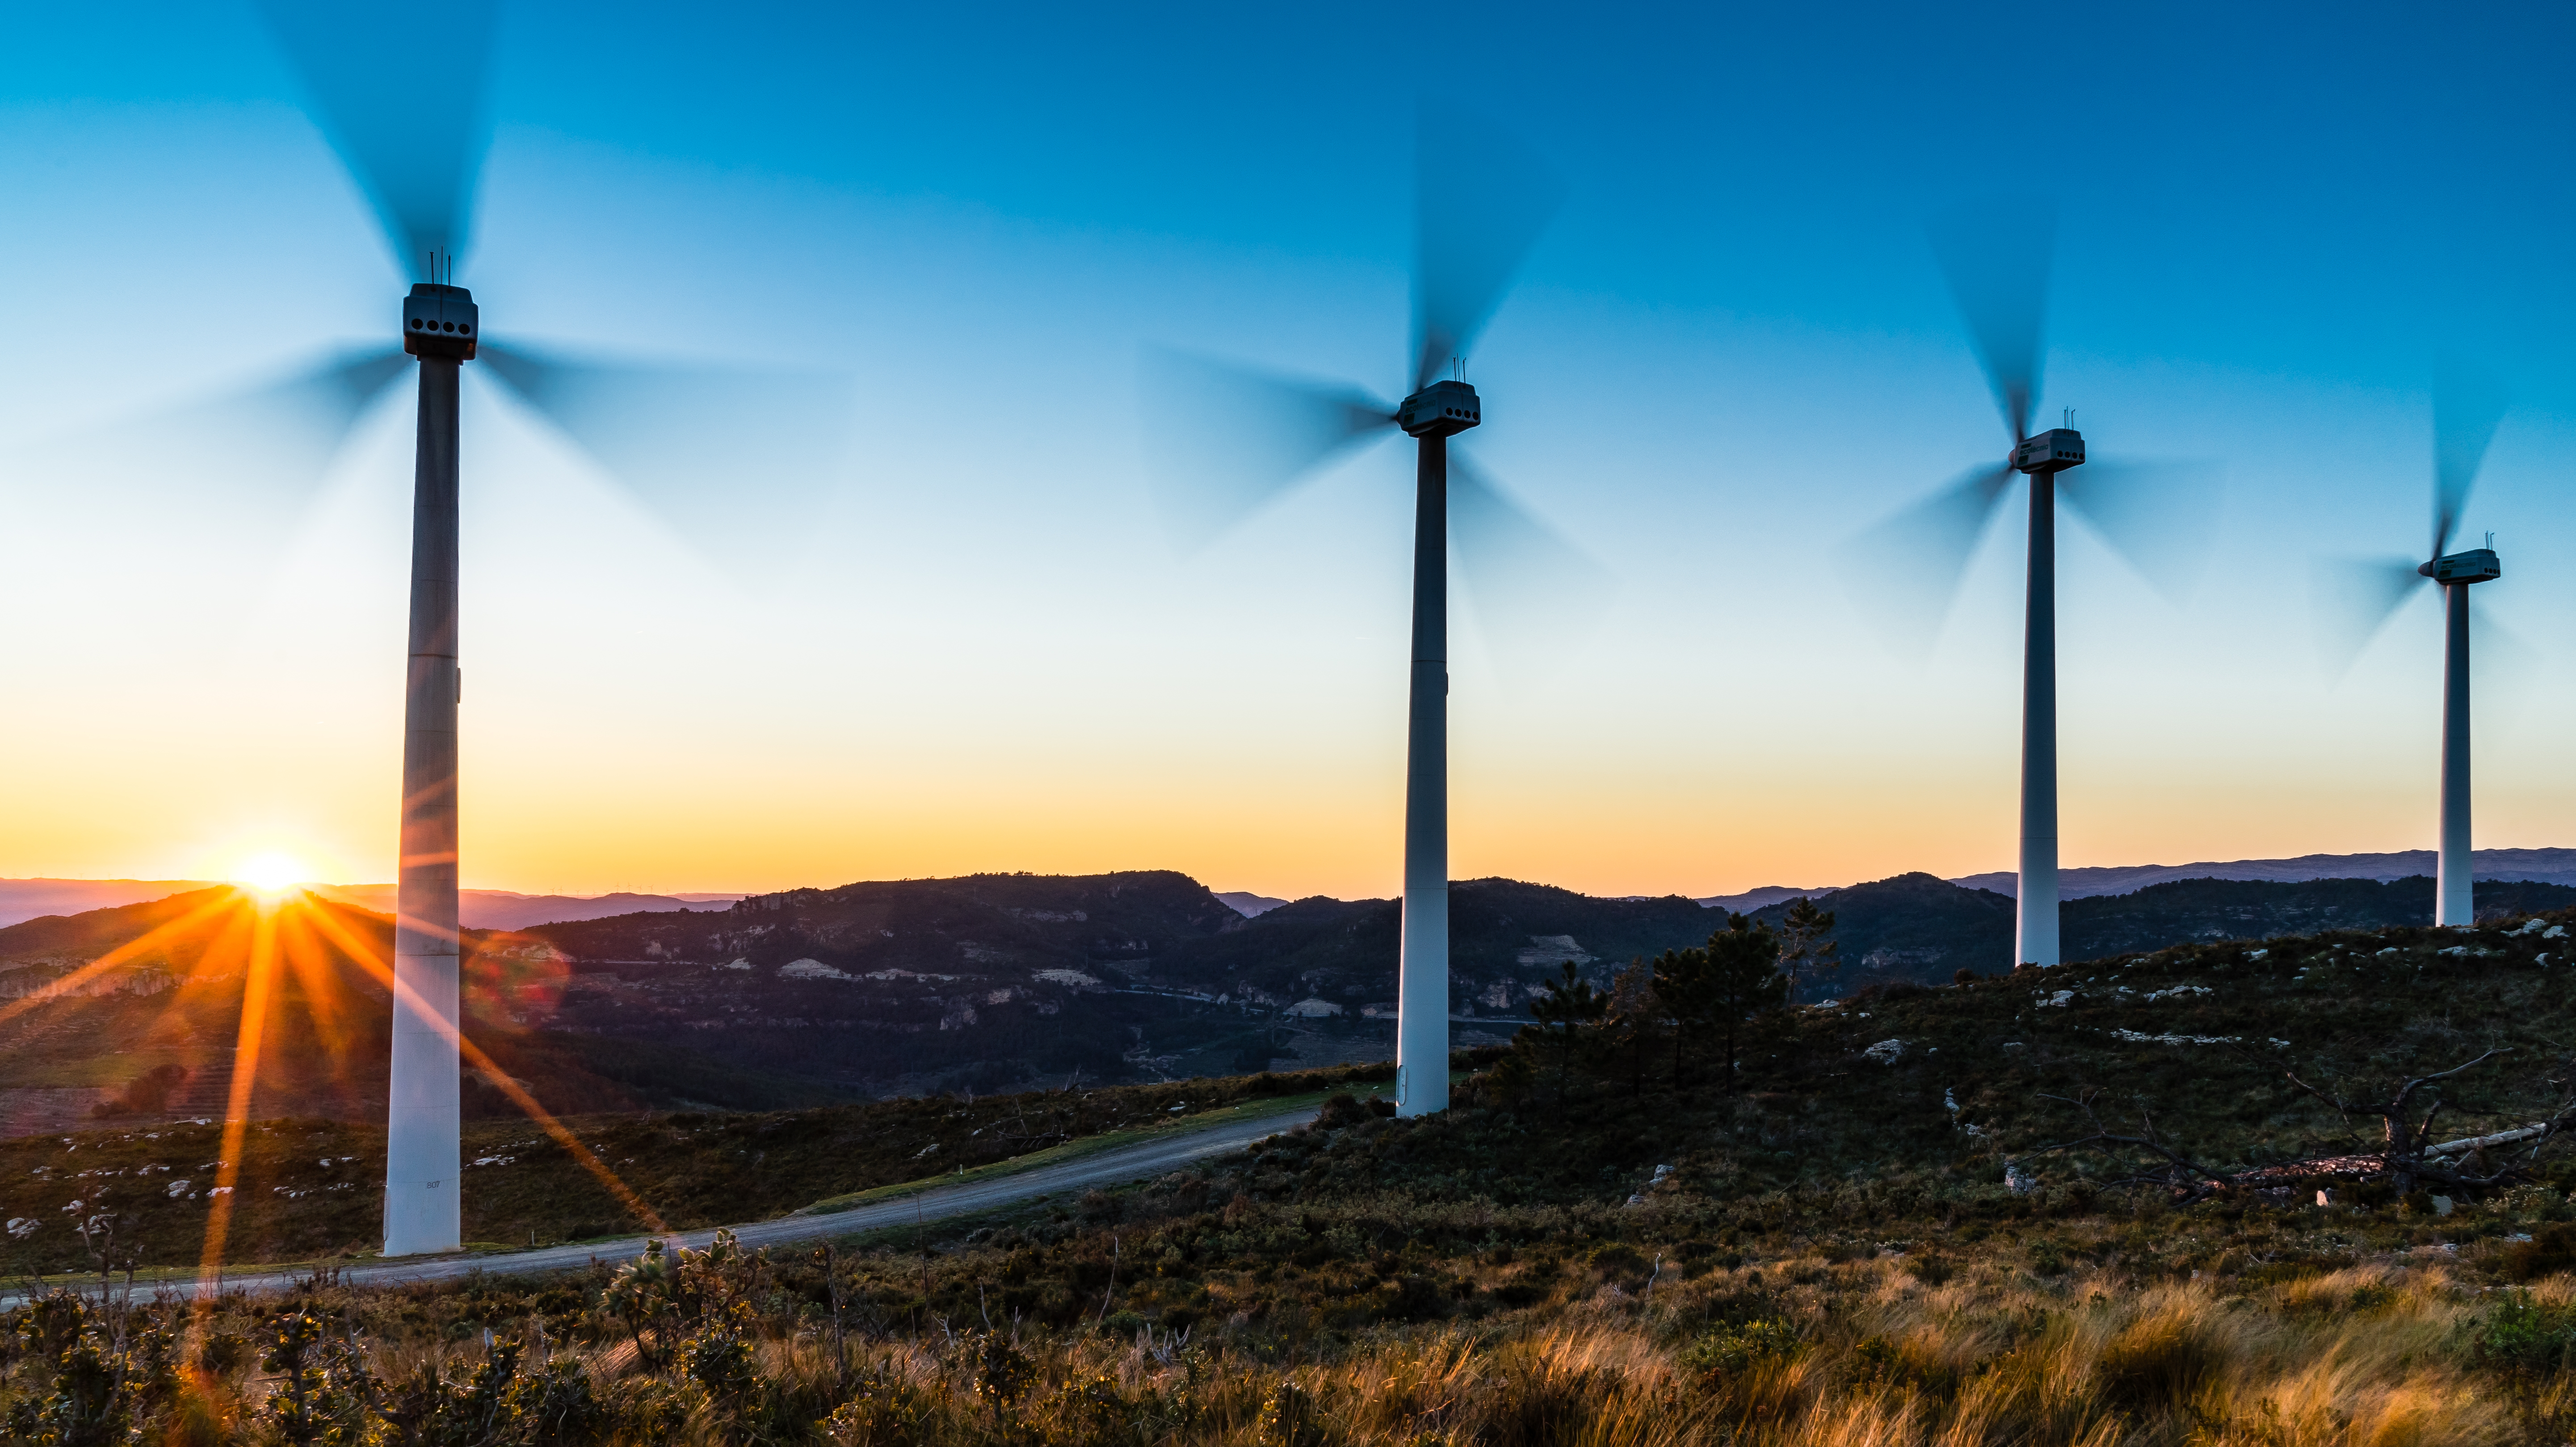 Tanzania: Solar and Wind Potential Could Help Meet Future Power